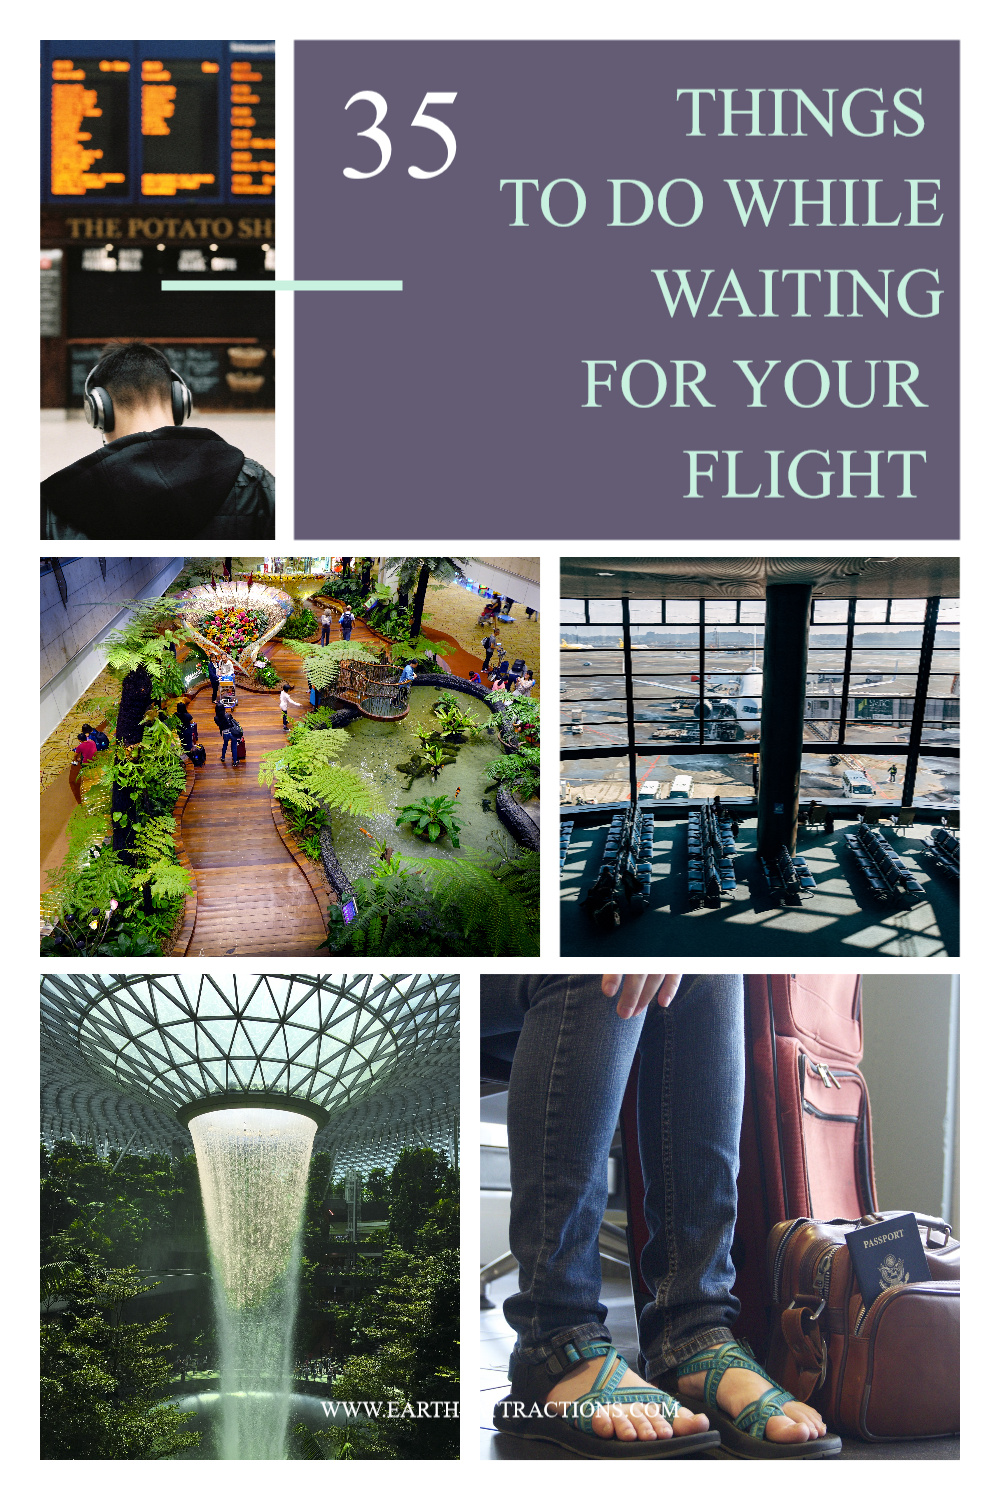 35 things to while waiting for your flight. These are truly the best things to do at the airport. #travel #airport #airportactivities #airportthingstodo #traveltips #earthsattractions